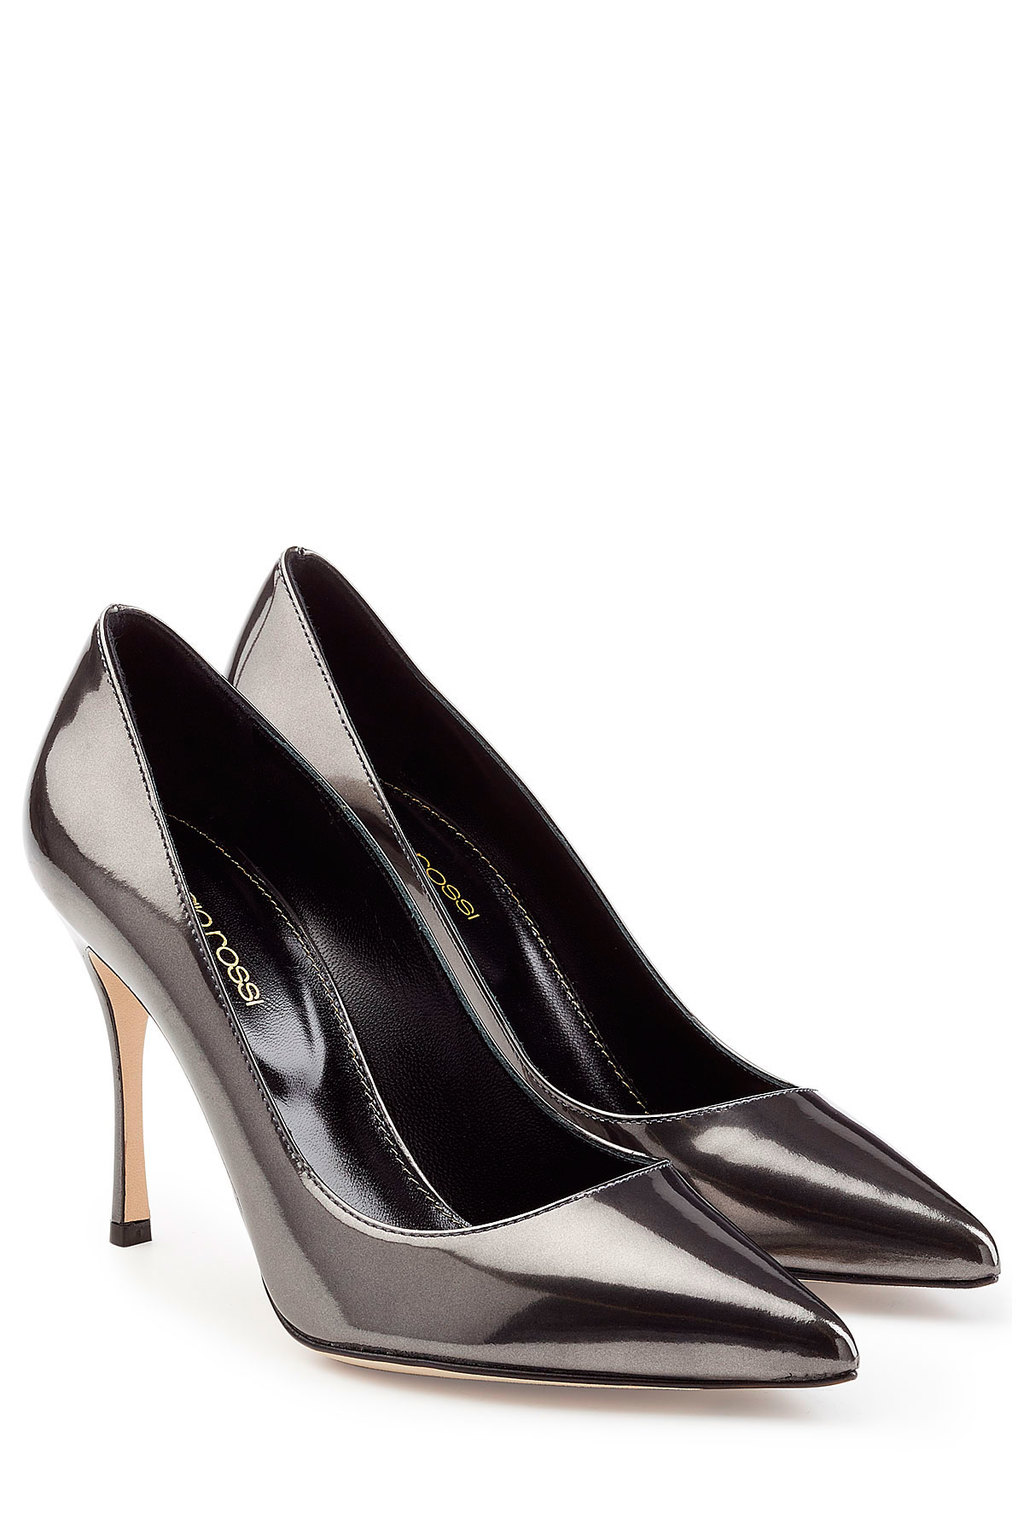 Patent Leather Pumps Black - predominant colour: silver; occasions: evening; material: leather; heel height: high; heel: stiletto; toe: pointed toe; style: courts; finish: metallic; pattern: plain; season: a/w 2015; wardrobe: event